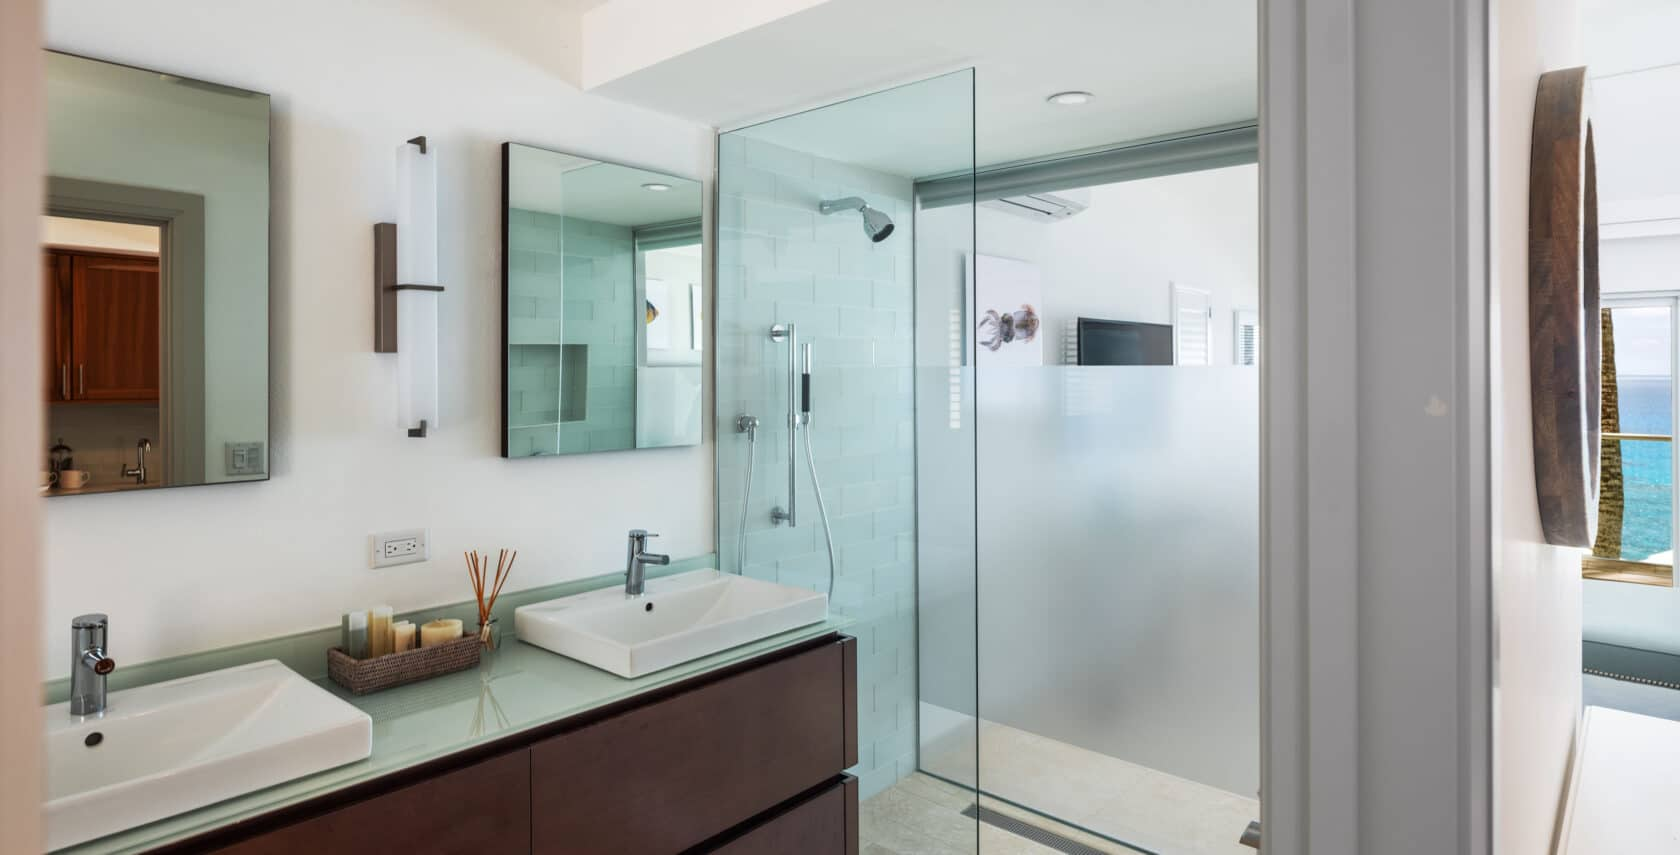 A bathroom with two sinks and a shower booth.